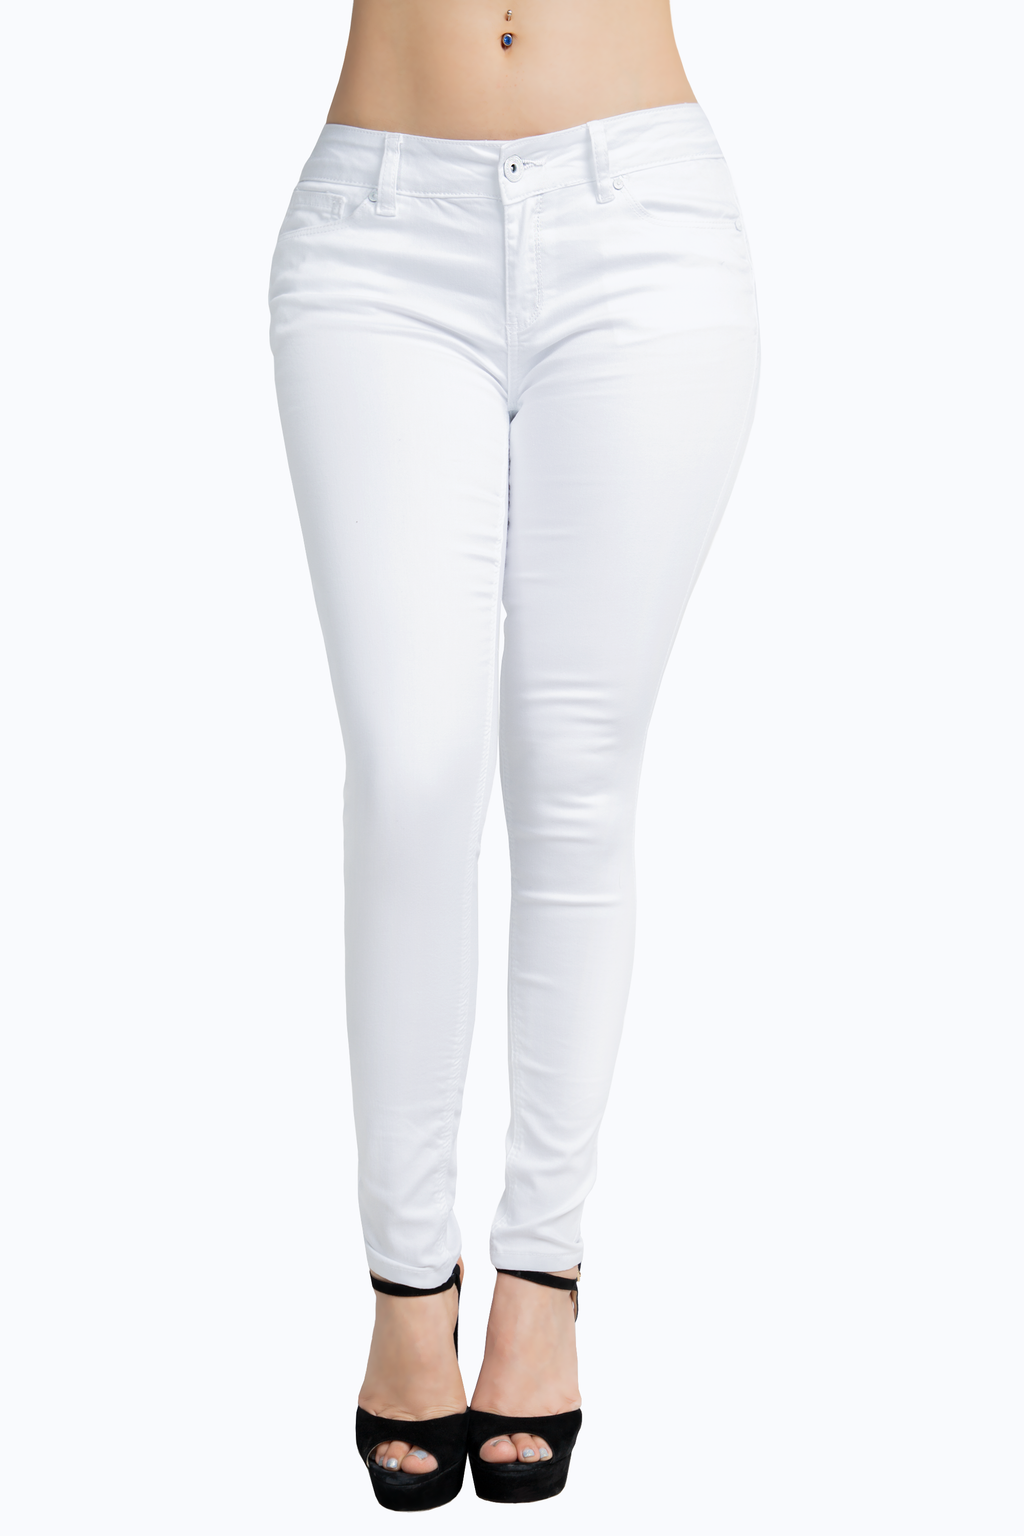 20433362c1b4 High Waist Destroyed Skinny Pants. $21.99. Butt Lifting White Skinny Jeans